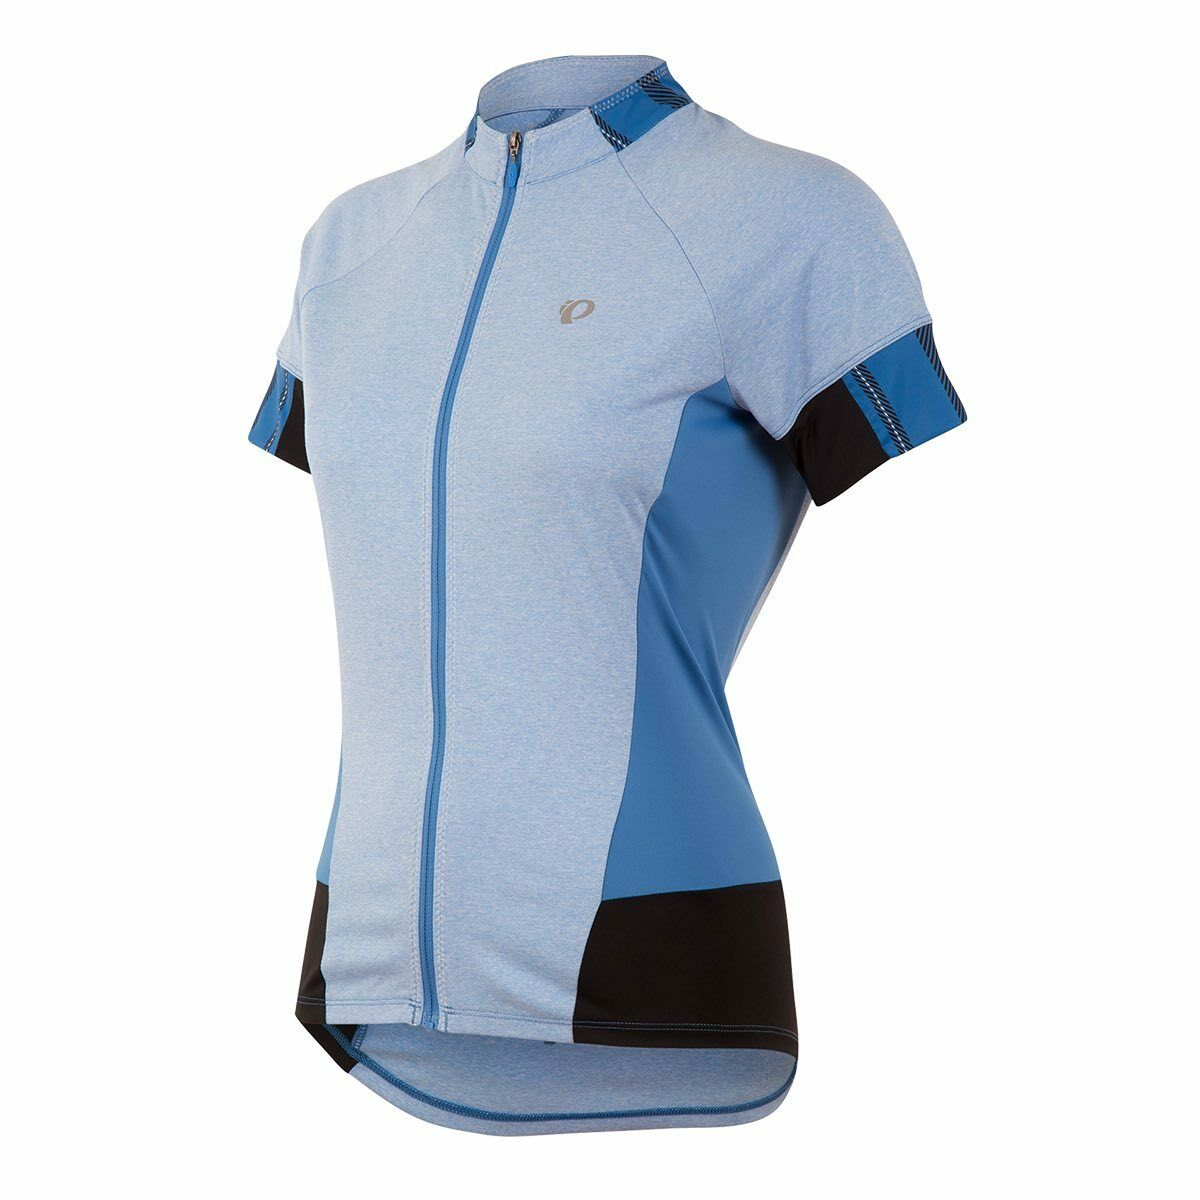 Pearl Izumi Select Escape Short Sleeve Cycling Jersey  Women's Sky bluee 11221630  save on clearance